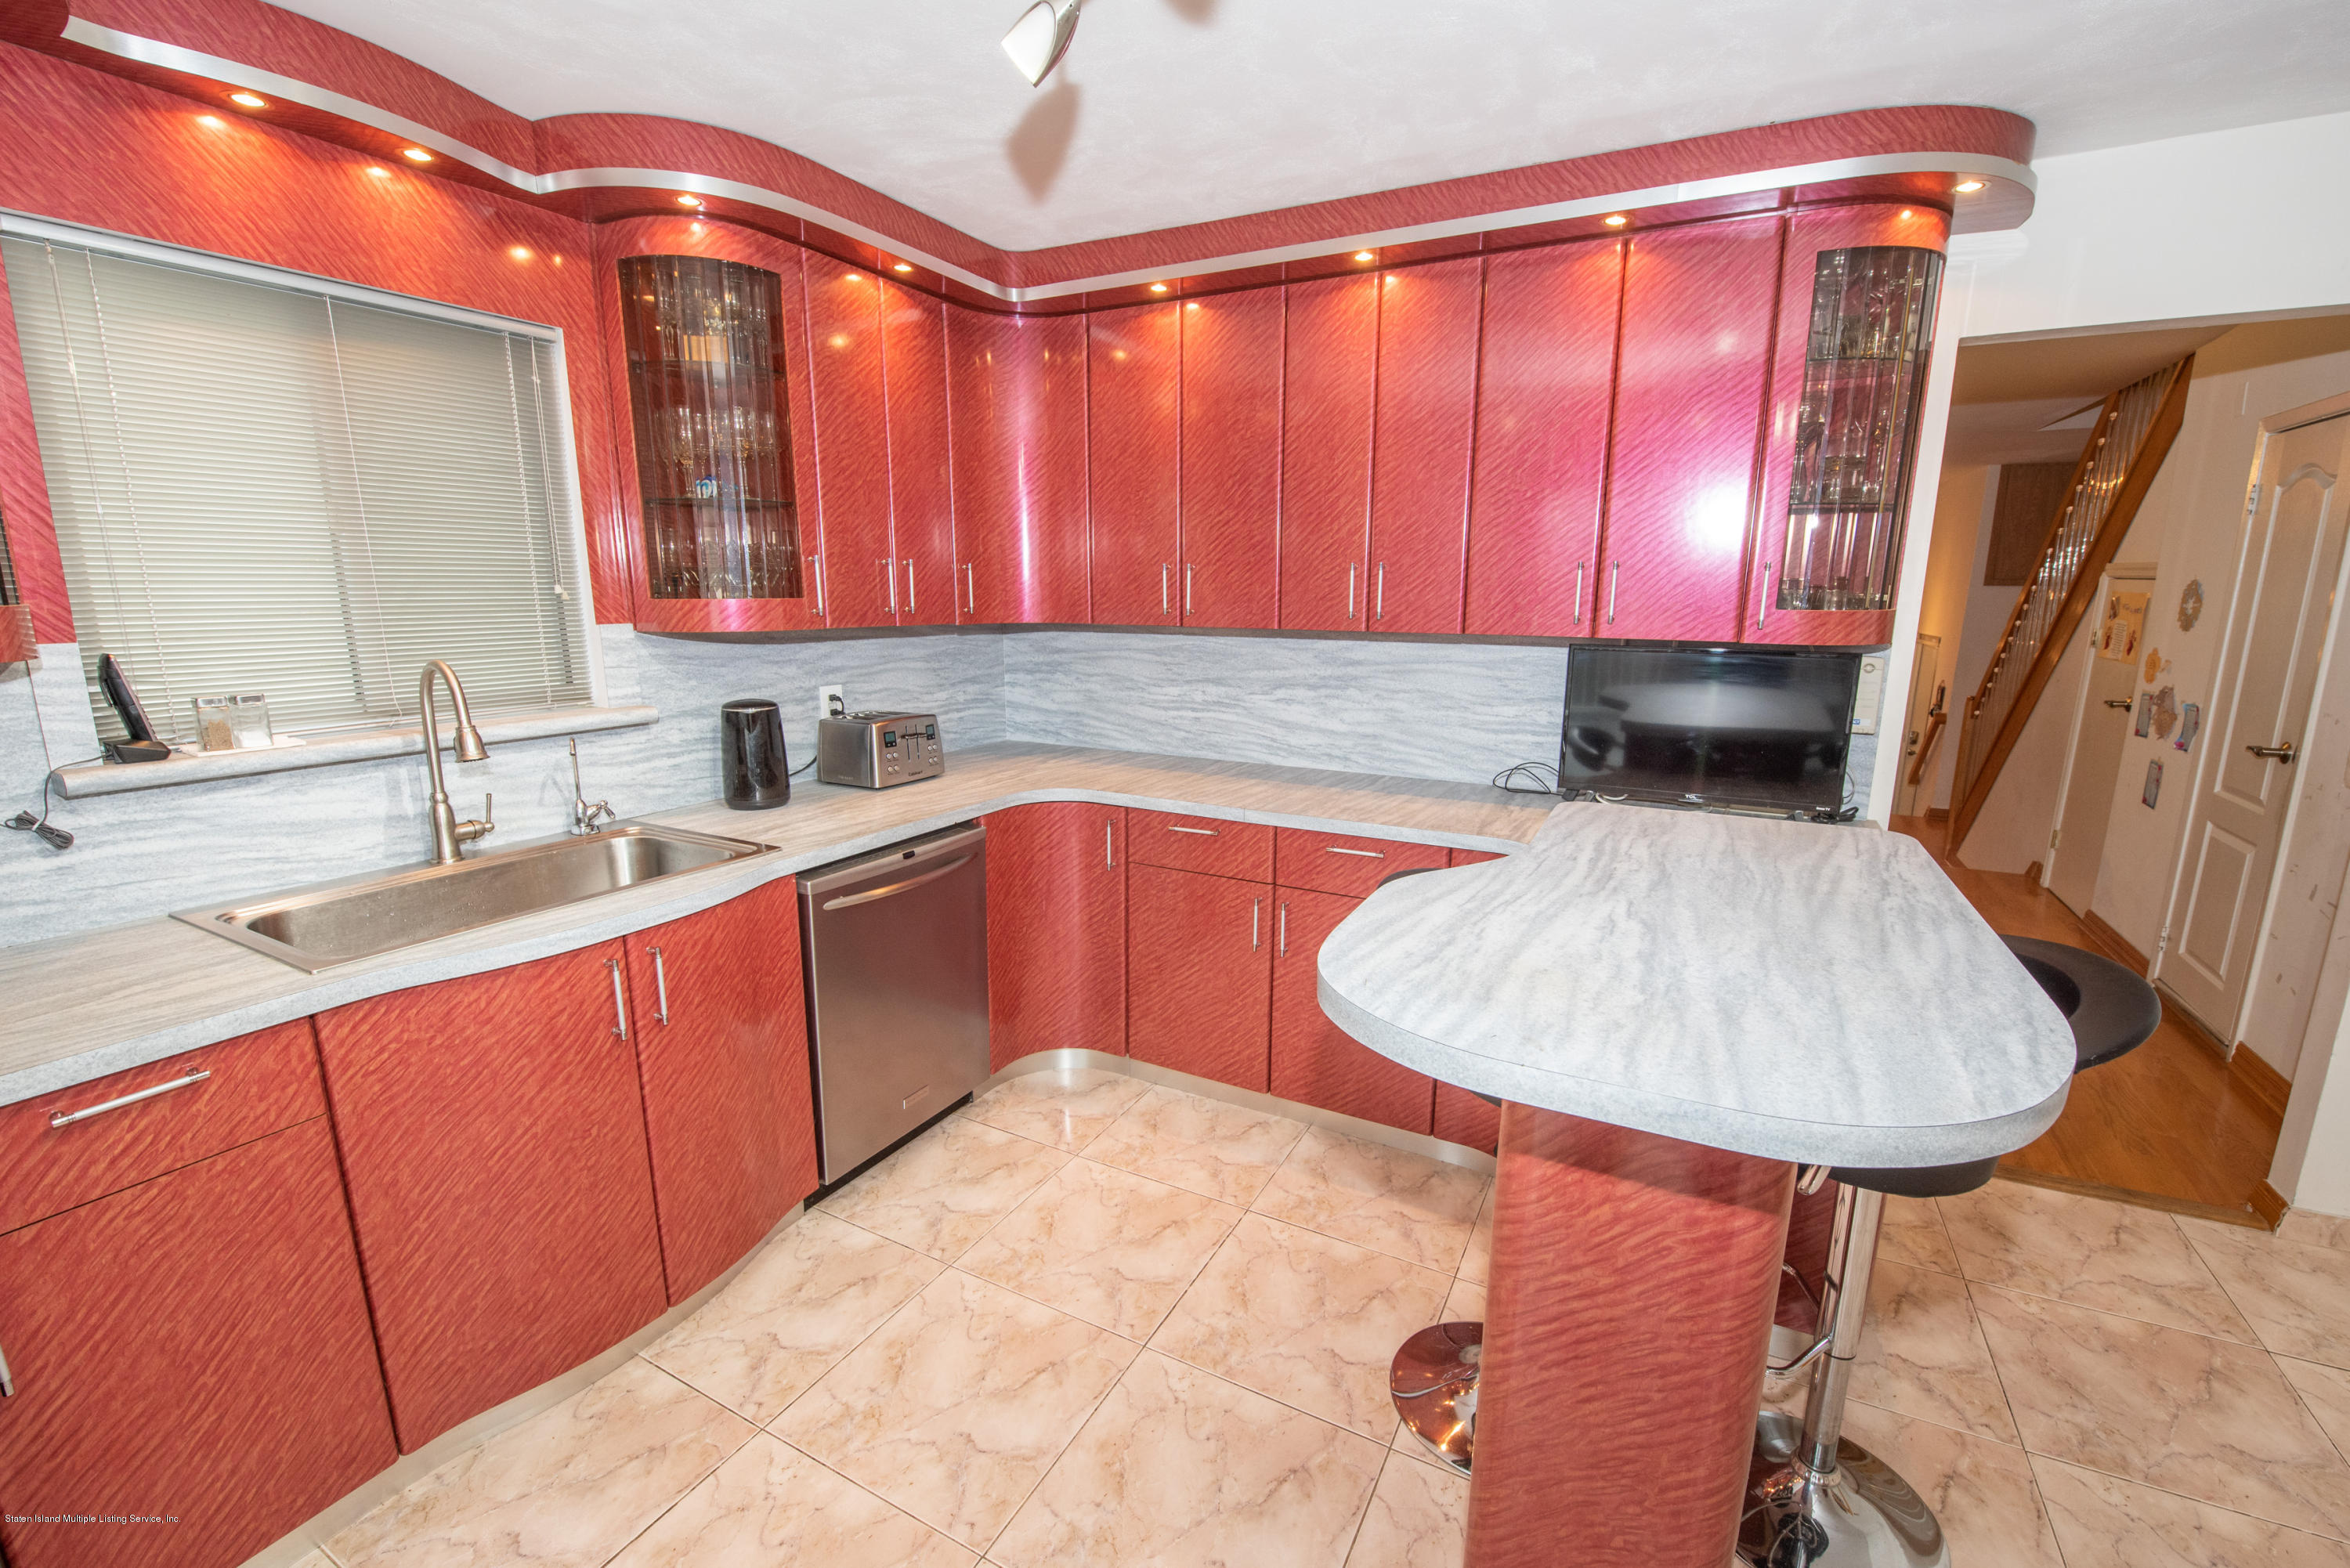 Single Family - Semi-Attached 76 Mcveigh Avenue  Staten Island, NY 10314, MLS-1133370-14